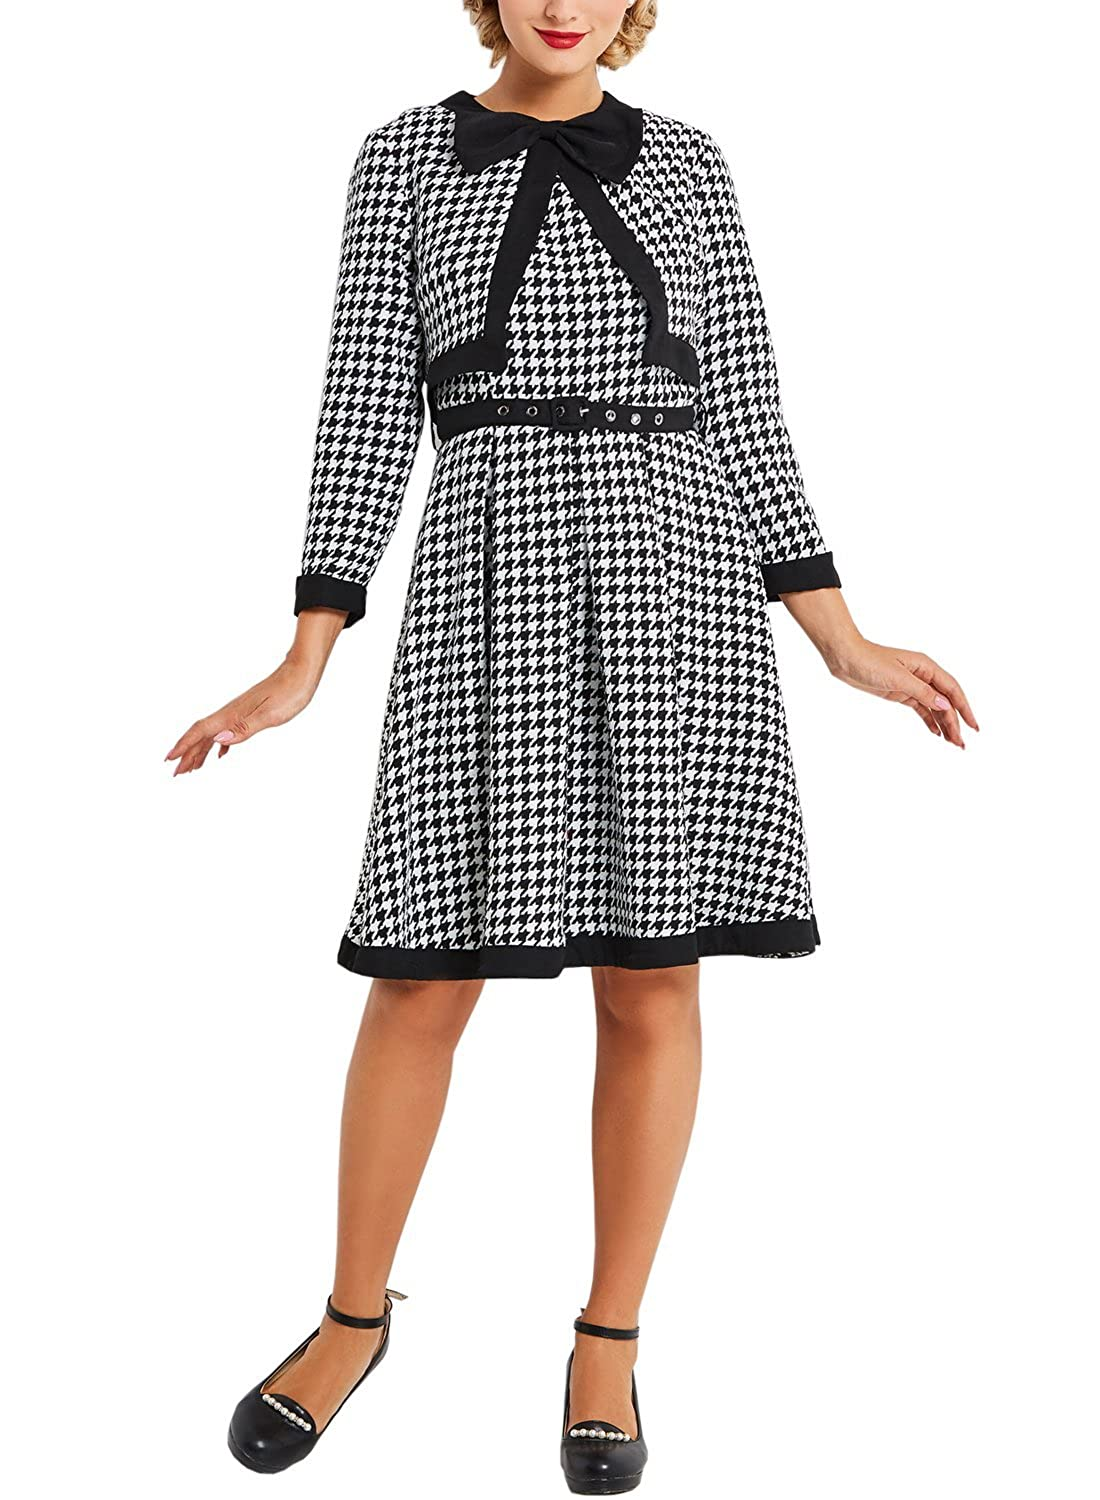 MERRYA Women's Vintage 1940s Houndstooth Knit Two Pieces Set Jacket Dress